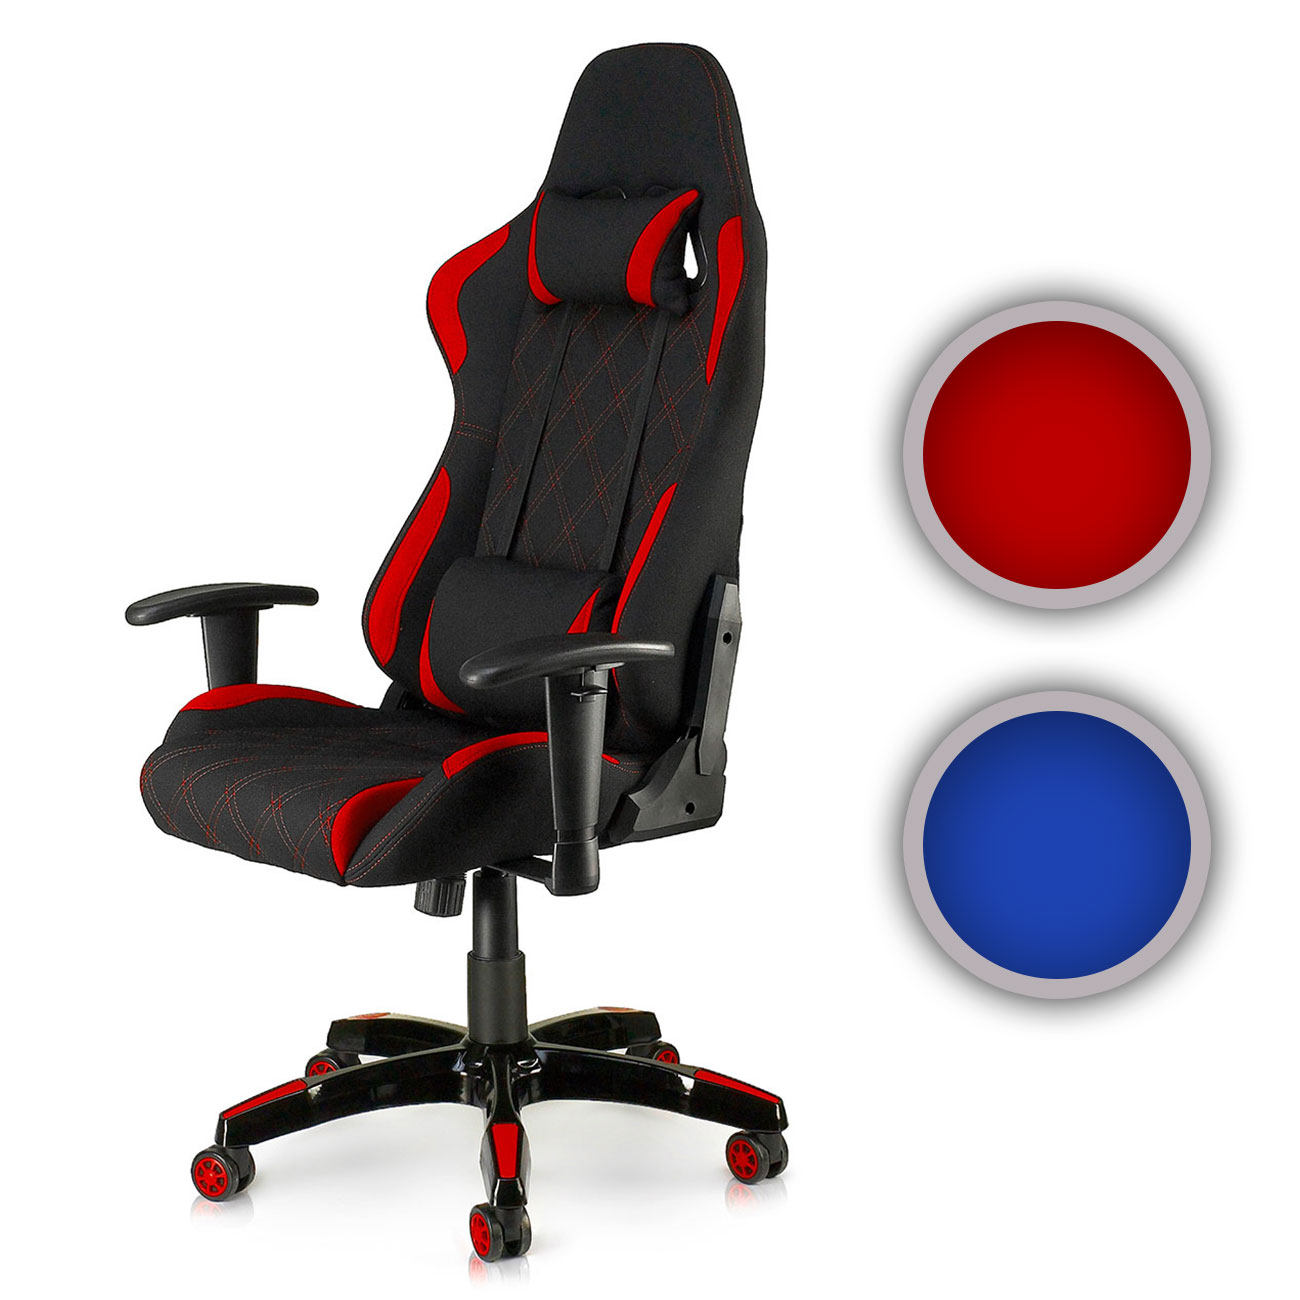 chaise bureau fauteuil si ge racing gamer sport ordinateur accoudoir neuf racer ebay. Black Bedroom Furniture Sets. Home Design Ideas